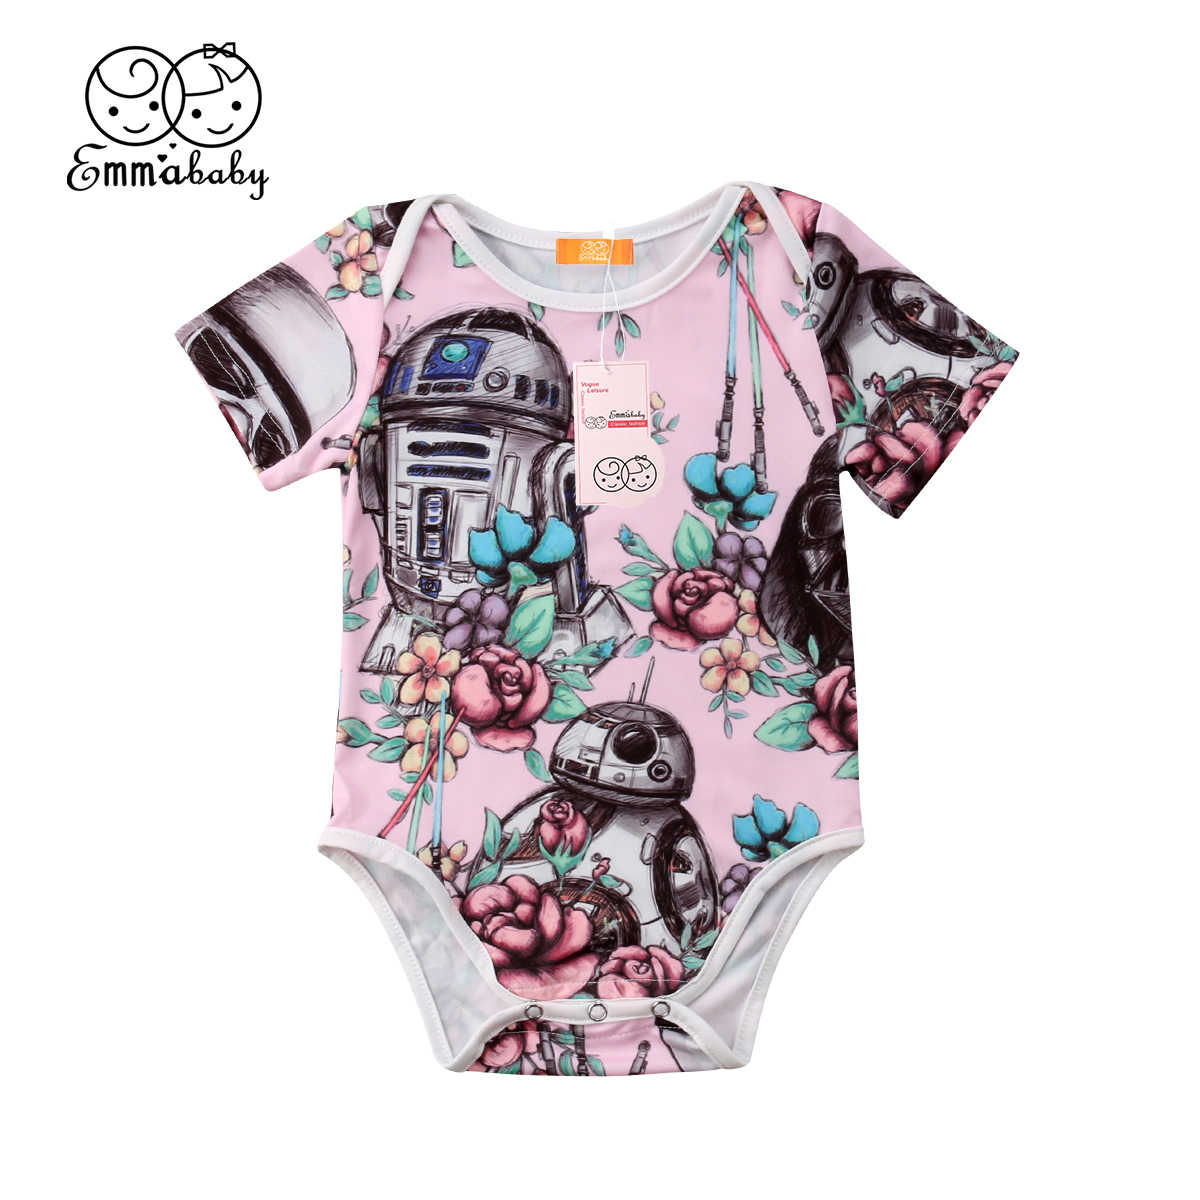 Neugeborenes kind Kinder Baby Mädchen Star Wars Body Overall Sunsuit Sommer Kleidung Kurzarm Outfits Bodys